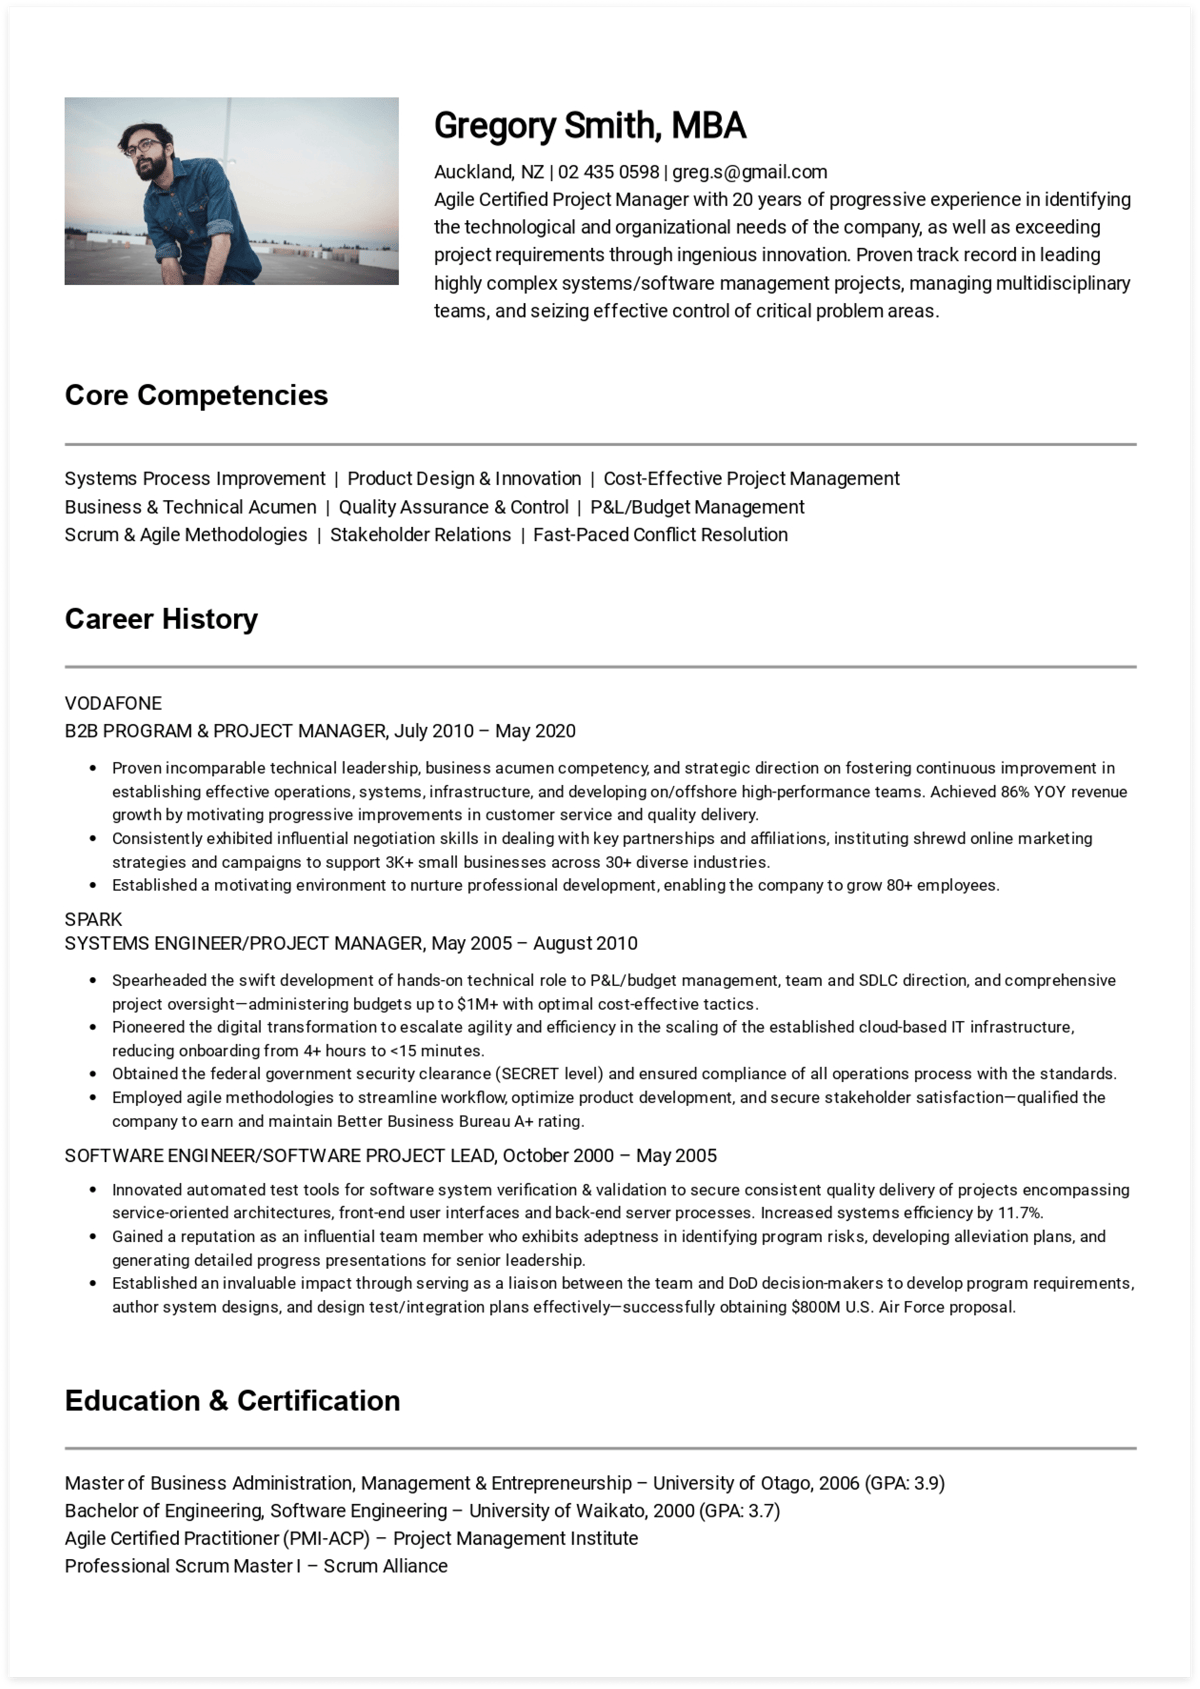 Click to download Gregory's Project Manager resume. Generated via CakeResume.